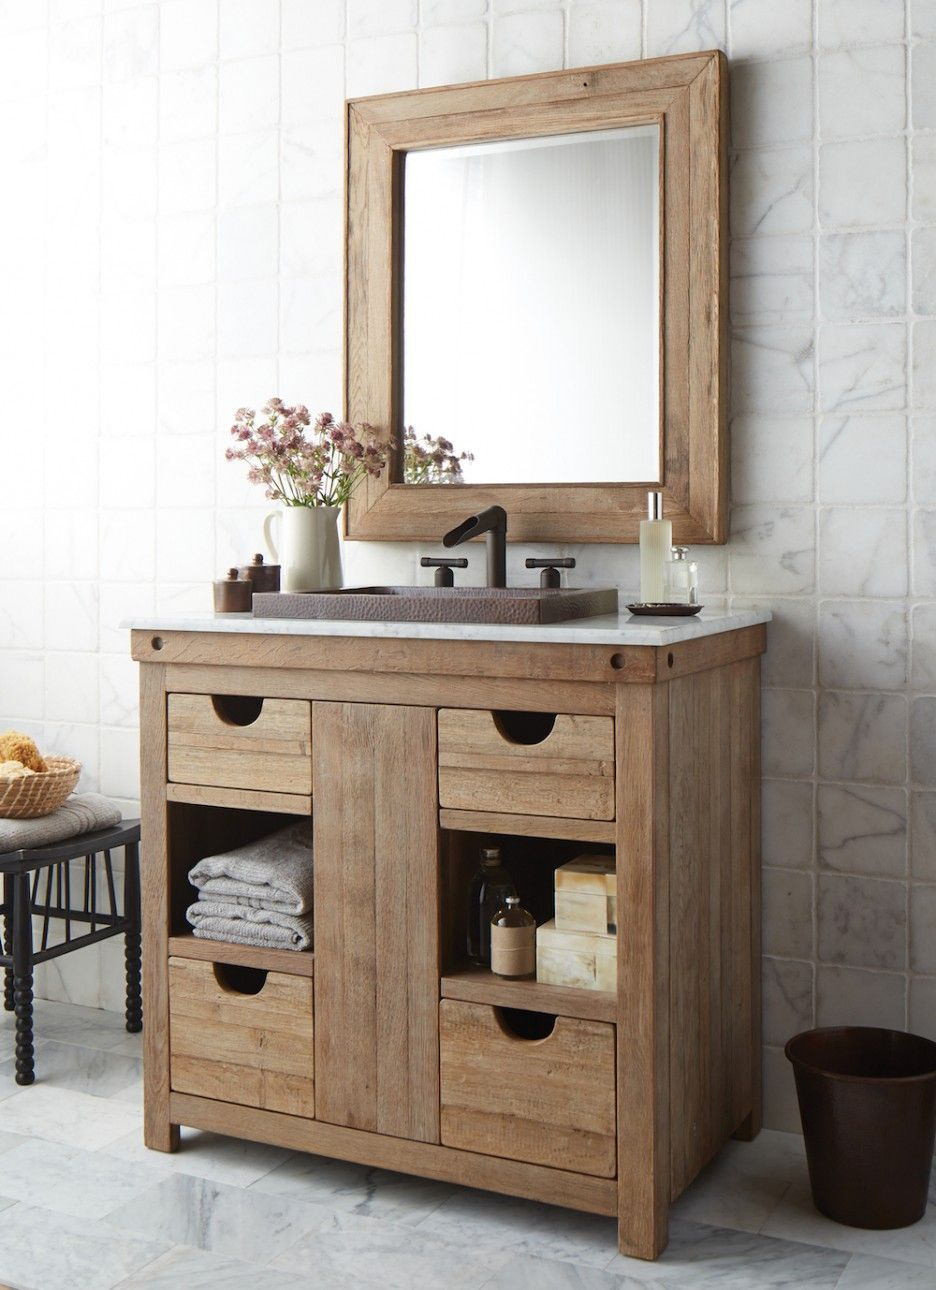 Simple Country Cottage Style Bathroom Vanity Featuring Brown Laminated Wooden Bathroom Vanity